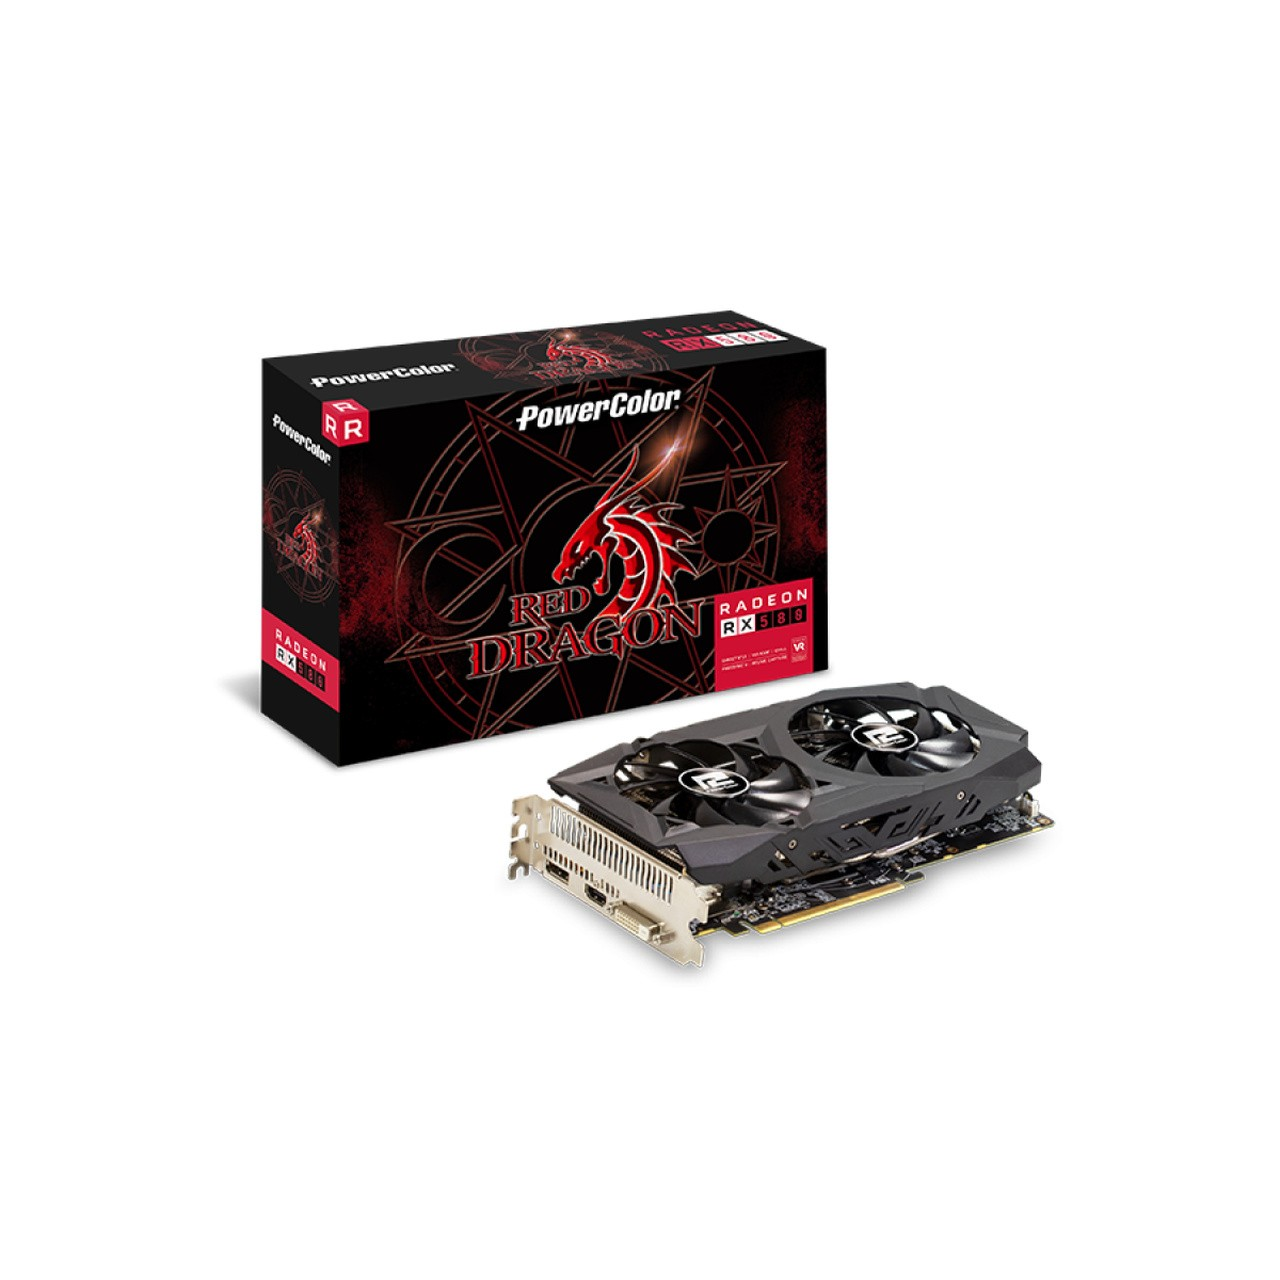 Placa de Video PowerColor Radeon Red Dragon RX 580 8GB GDDR5 256Bit AXRX 580 8GBD5-DHDV2/OC